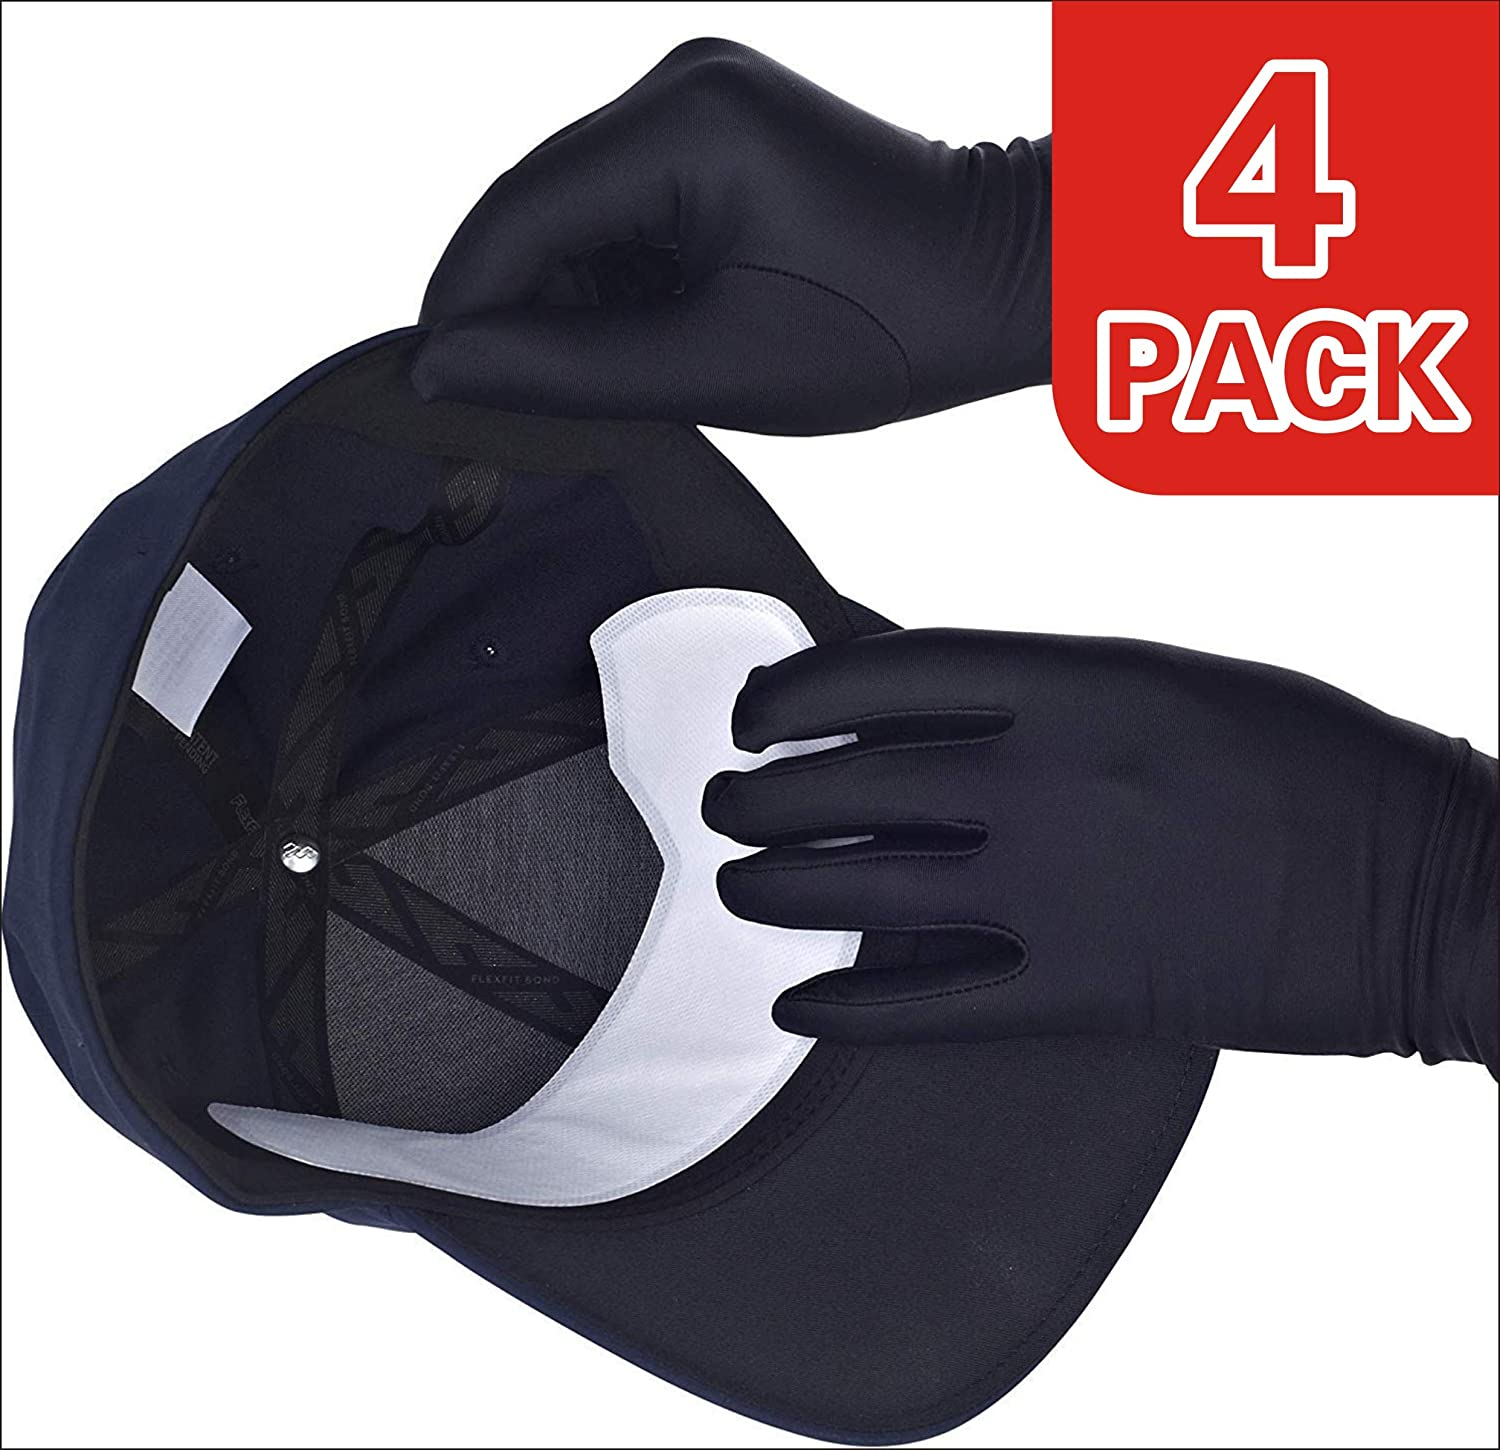 Hard Hat Liner, Men's Golf Caps, Hat Liner, Cap Protection, Prevent Hat Sweat Stains Rings, Moisture Wicking, Cooling Towel Effect, Sweatband, Hat Saver Protection, Men's Sports Hats